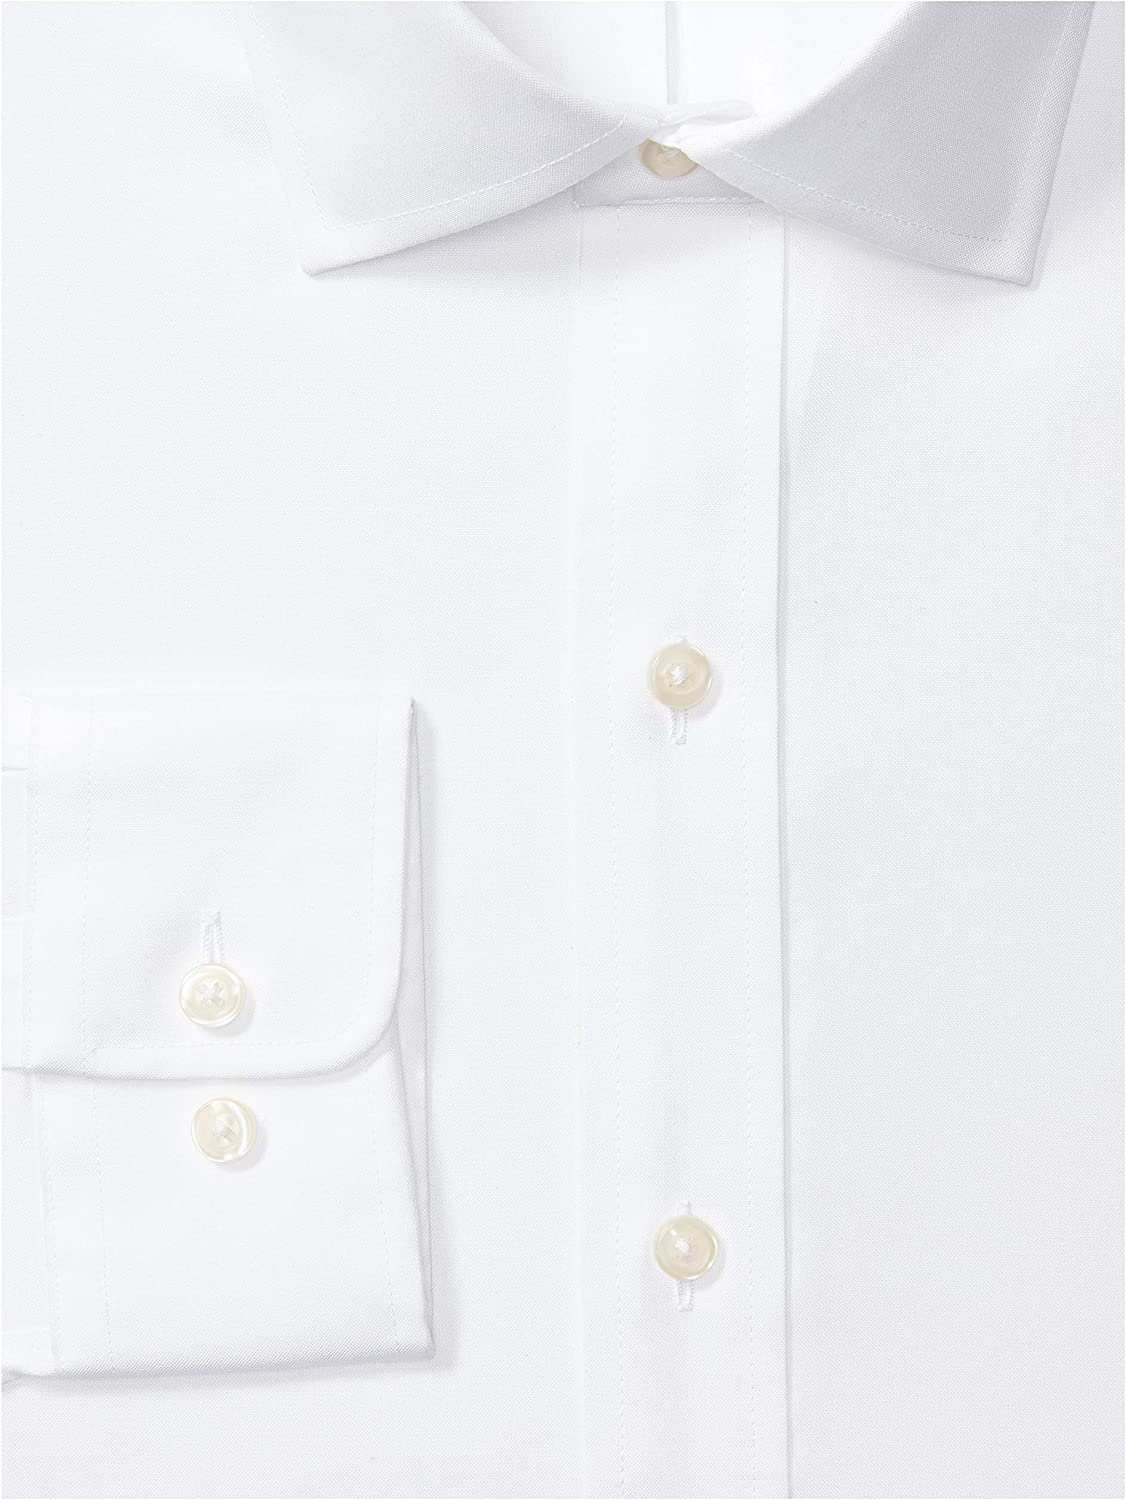 Amazon Brand - Buttoned Down Classic Fit Solid Pocket Options Dress Shirt White (White/No Pockets)